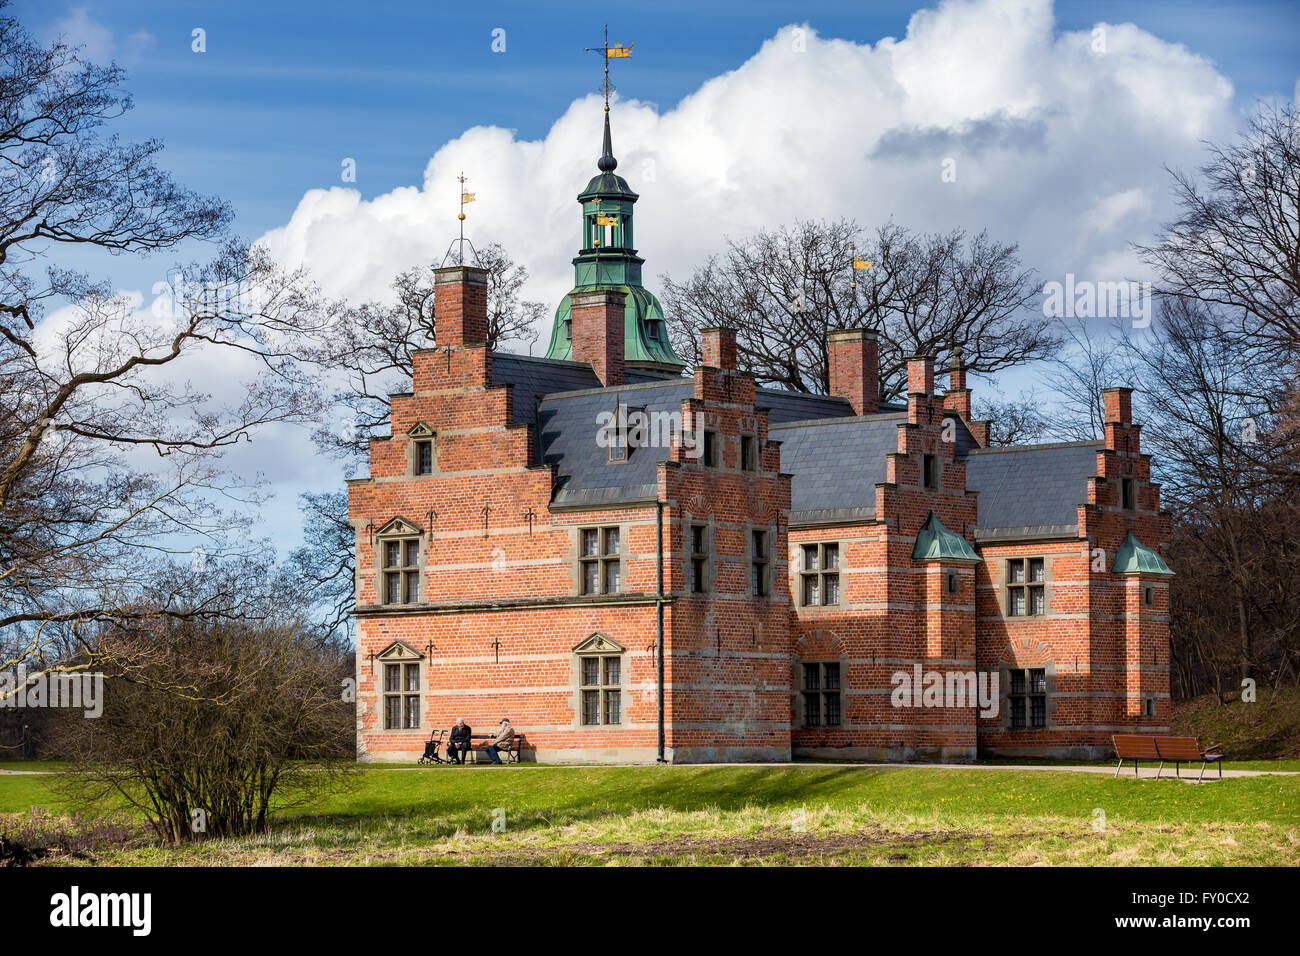 Bath House or Royal Hunting Lodge, Frederiksborg Castle, Denmark - Stock Image